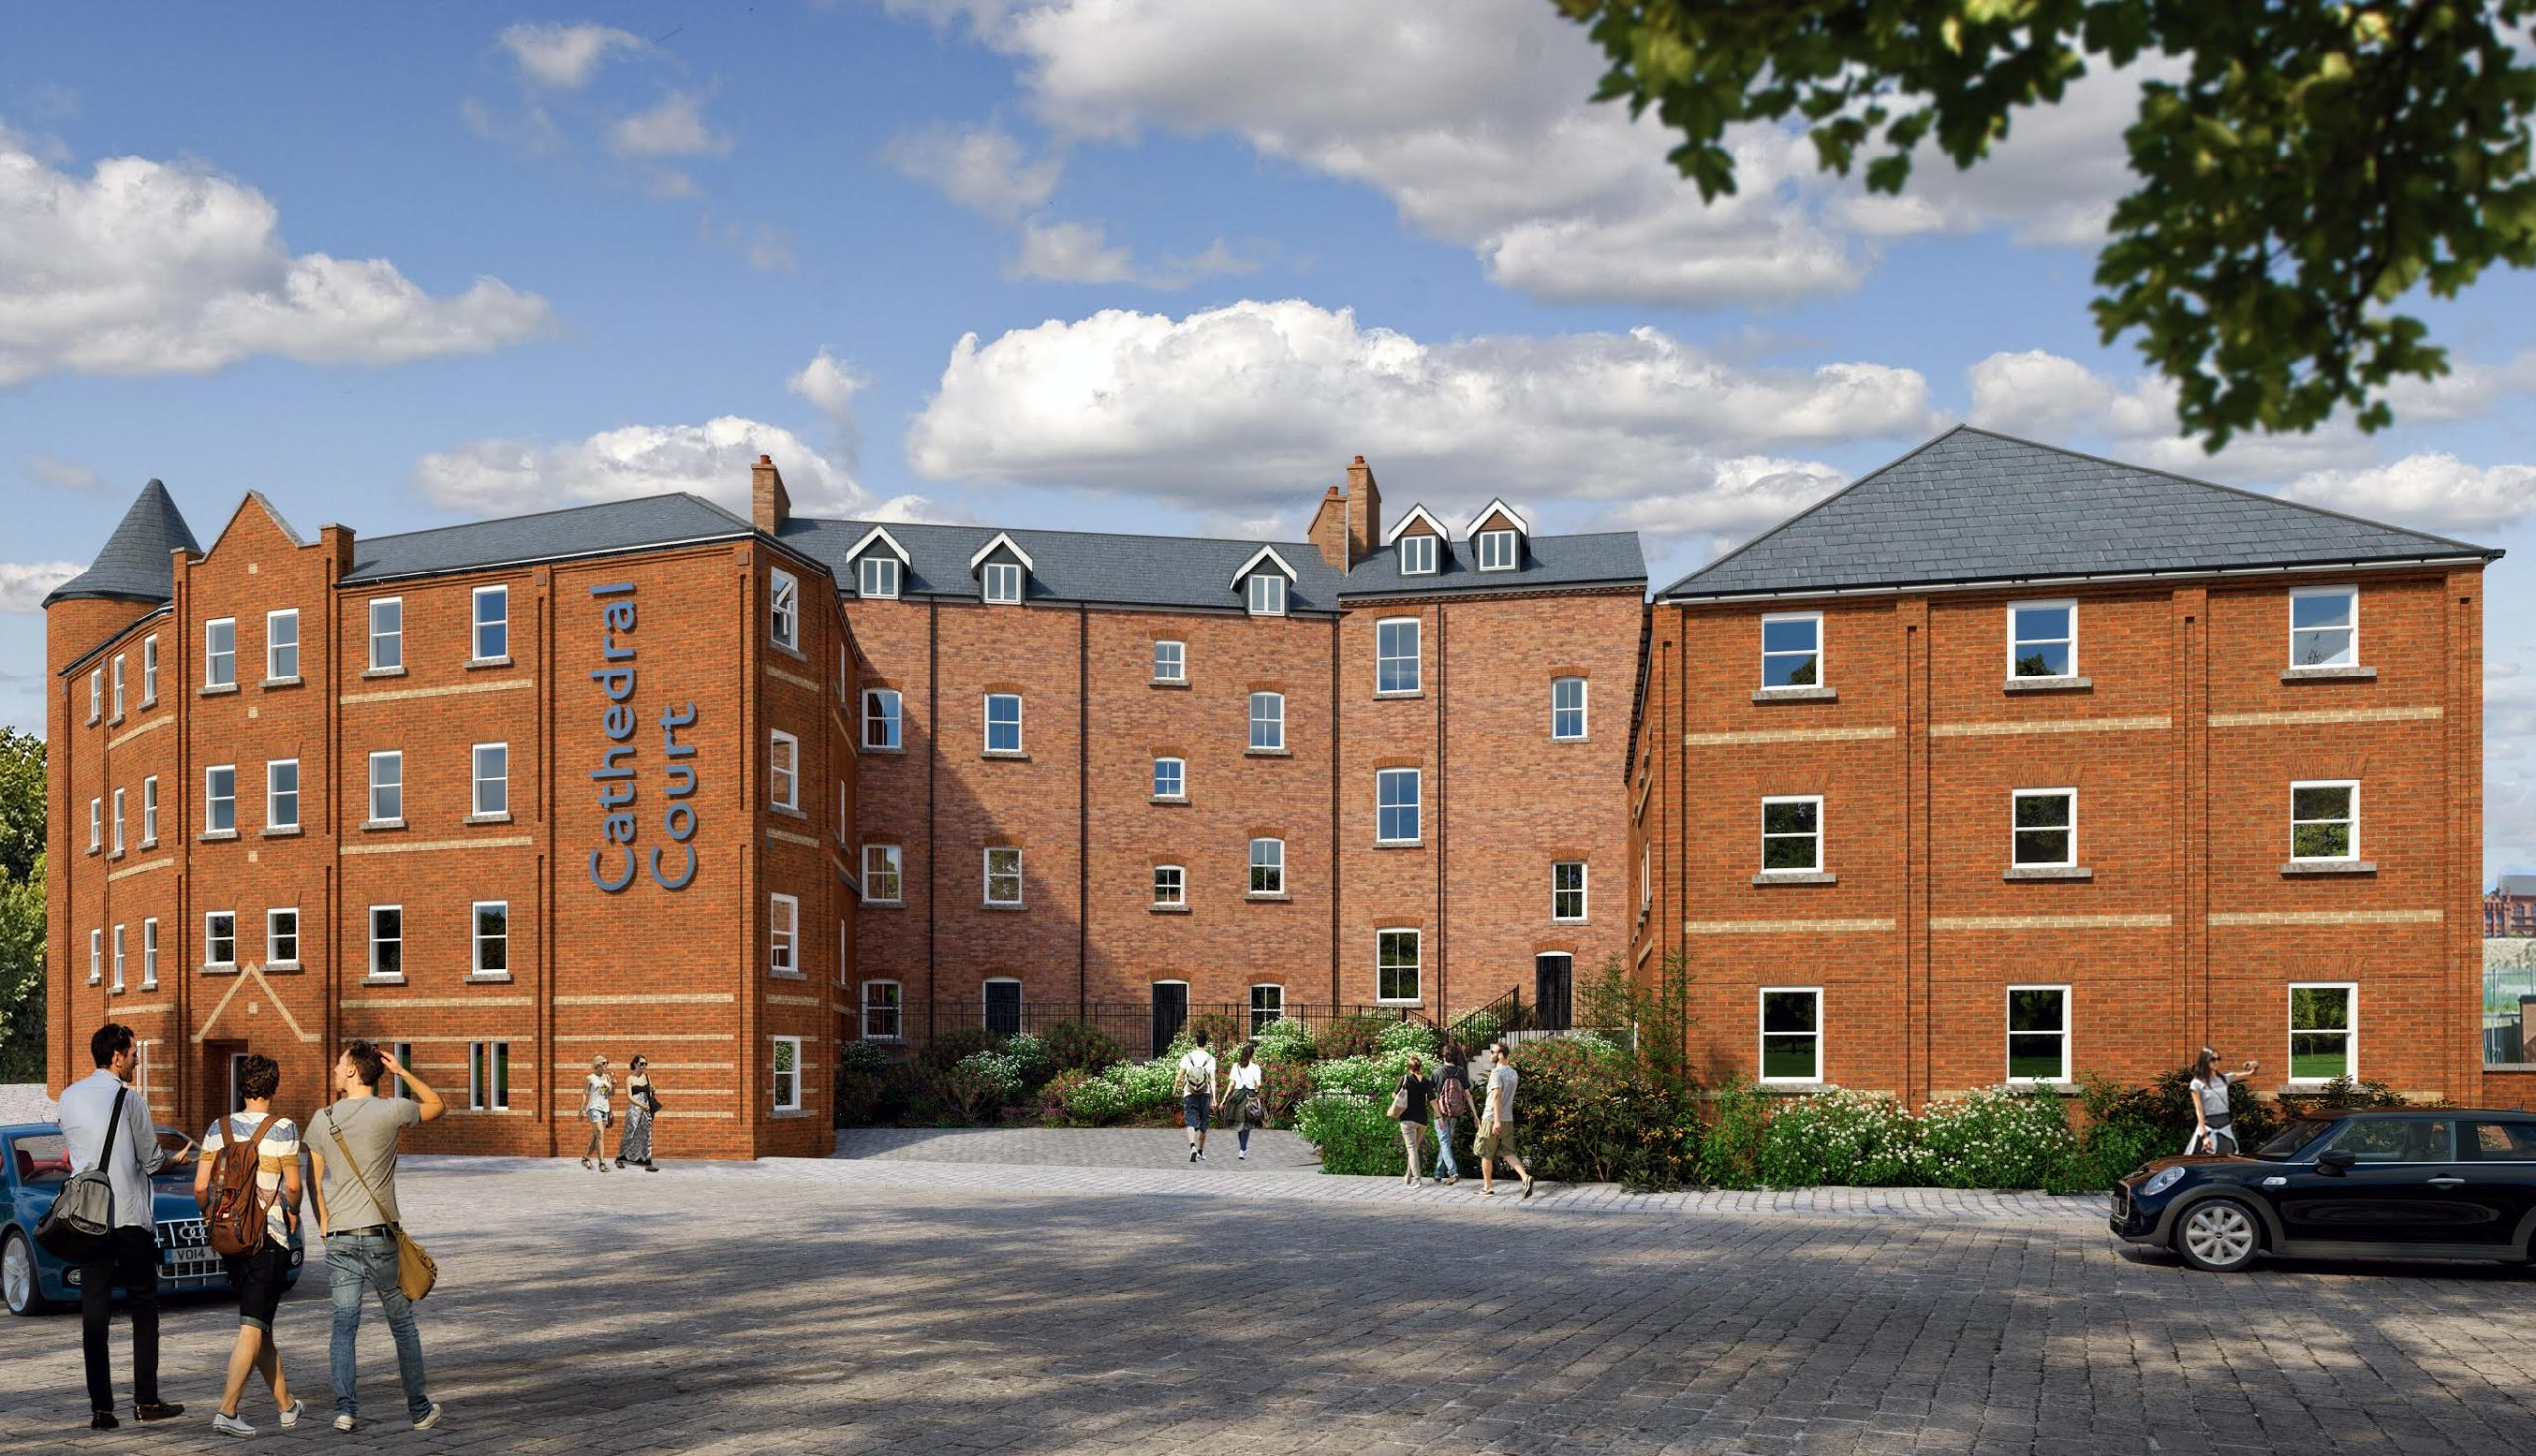 Flat 14, Cathedral Court – 3 Bed